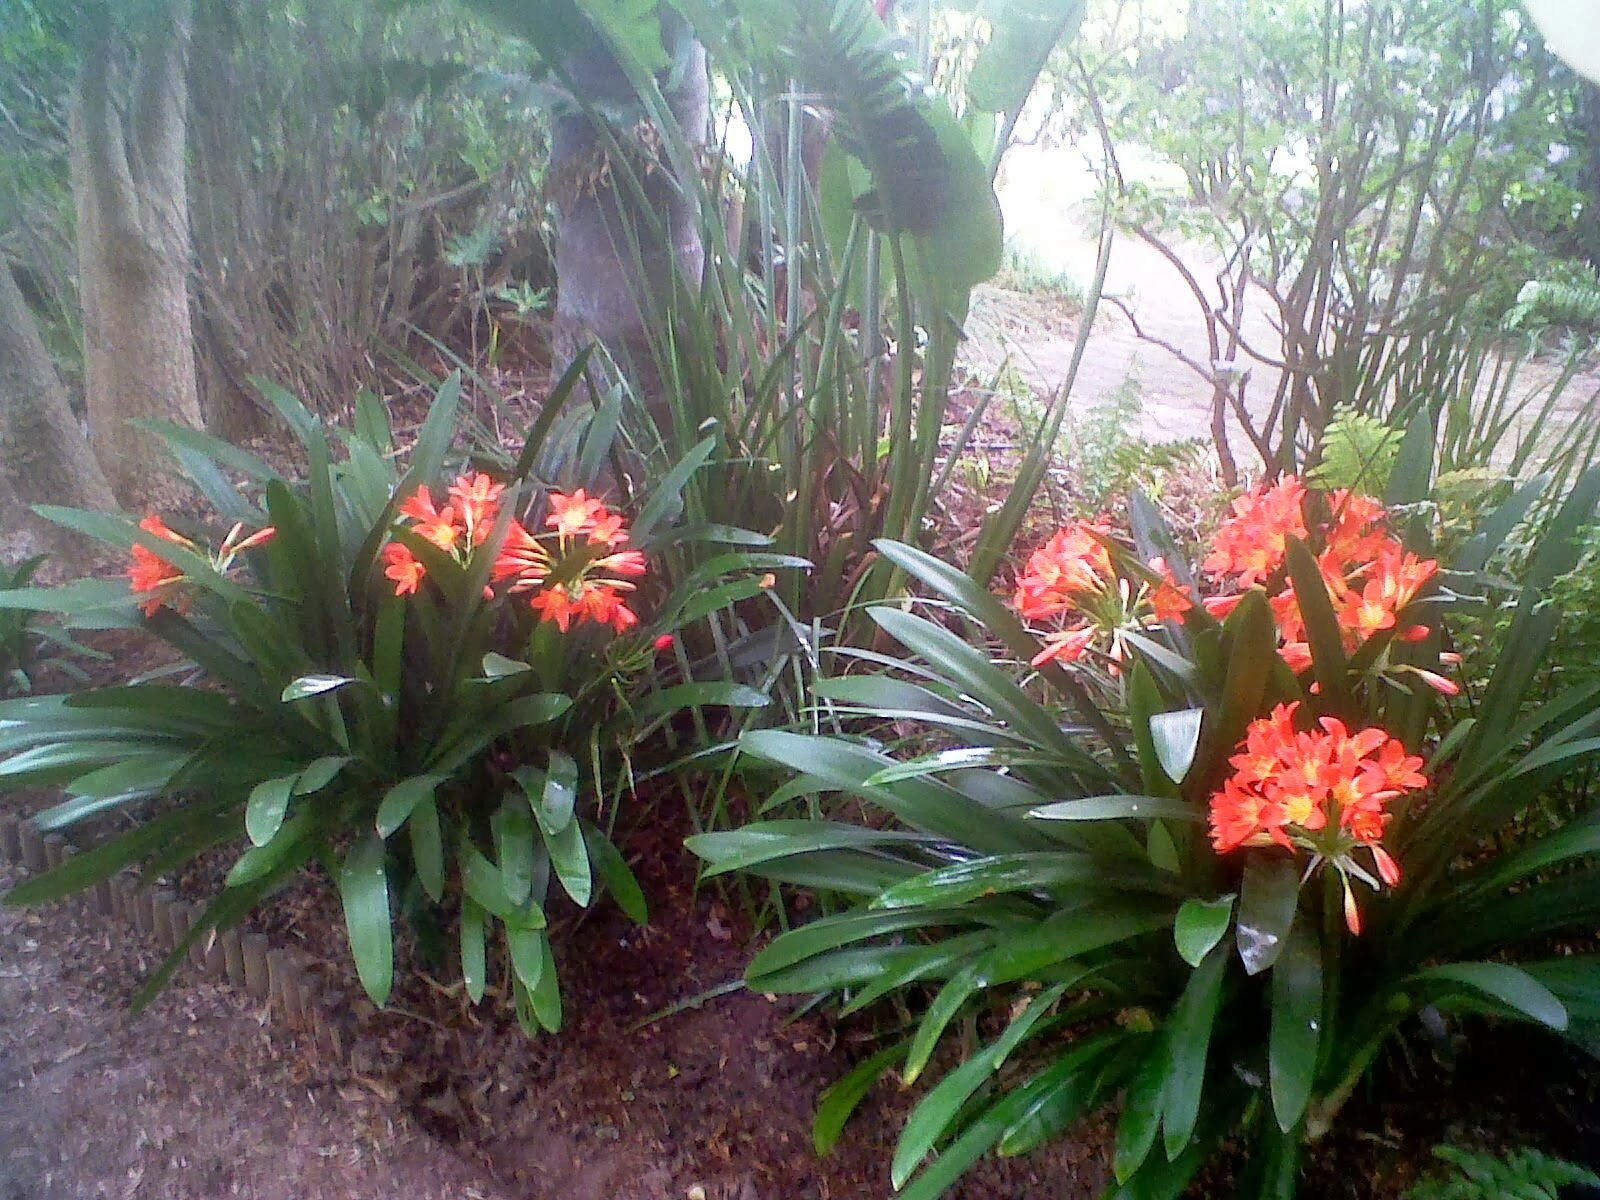 Winsome Urban Garden And Backyard Farming South Africa Growing Clivias  With Fascinating Two Clivias Already Established In The Garden  Proving Some Plants Flower  Beautifully In Shade  With Amusing Gardener And Haskins Also Trocadero Gardens In Addition Jasmine Garden Takeaway And Screening Garden Ideas As Well As Waterproof Garden Parasol Additionally Neptune Garden Chairs From Southafricanurbangardenerblogspotcom With   Fascinating Urban Garden And Backyard Farming South Africa Growing Clivias  With Amusing Two Clivias Already Established In The Garden  Proving Some Plants Flower  Beautifully In Shade  And Winsome Gardener And Haskins Also Trocadero Gardens In Addition Jasmine Garden Takeaway From Southafricanurbangardenerblogspotcom